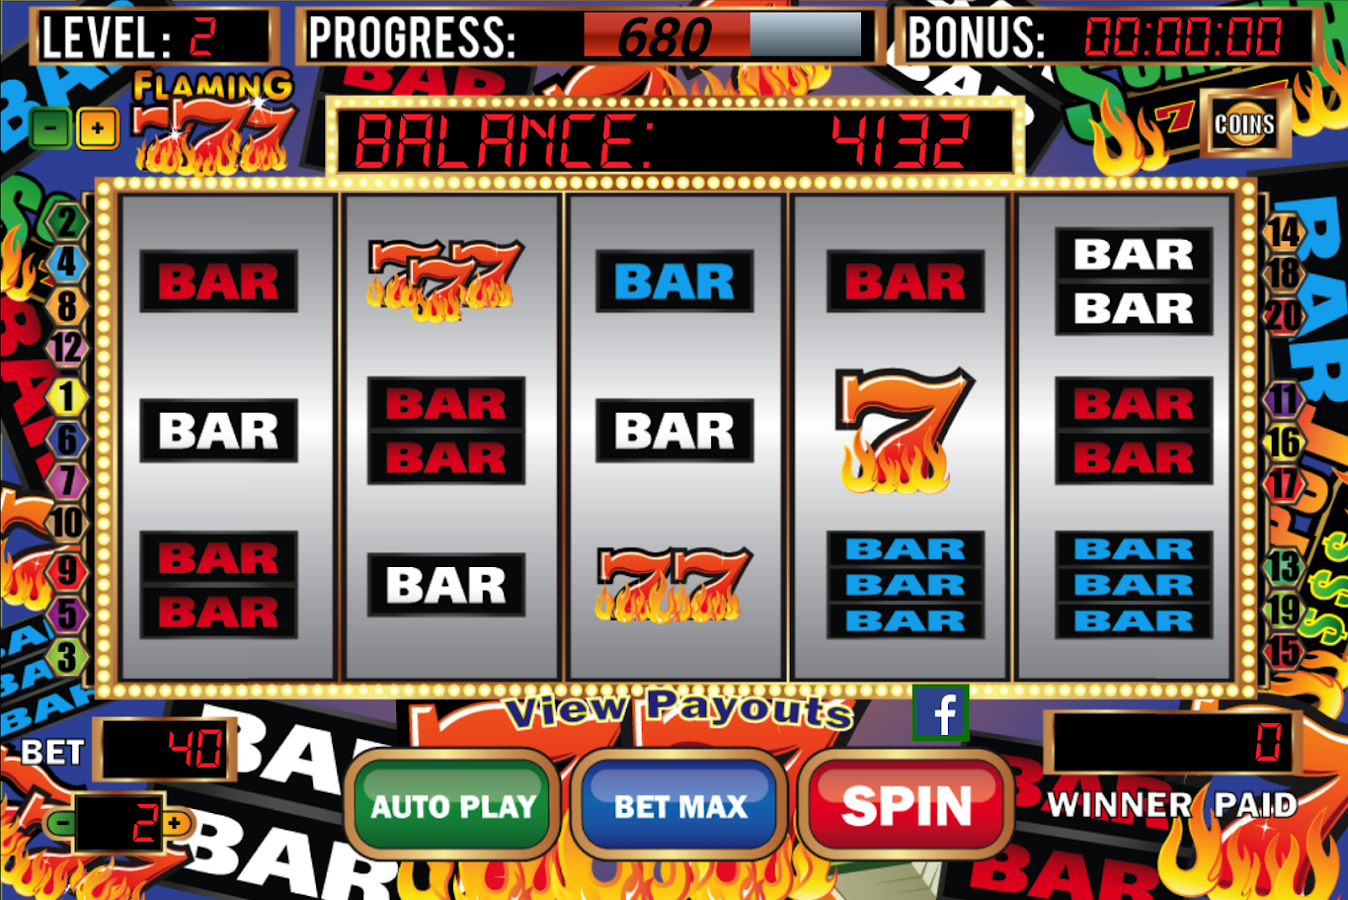 Hot Seven - 5 Reels - Play legal online slot games! OnlineCasino Deutschland